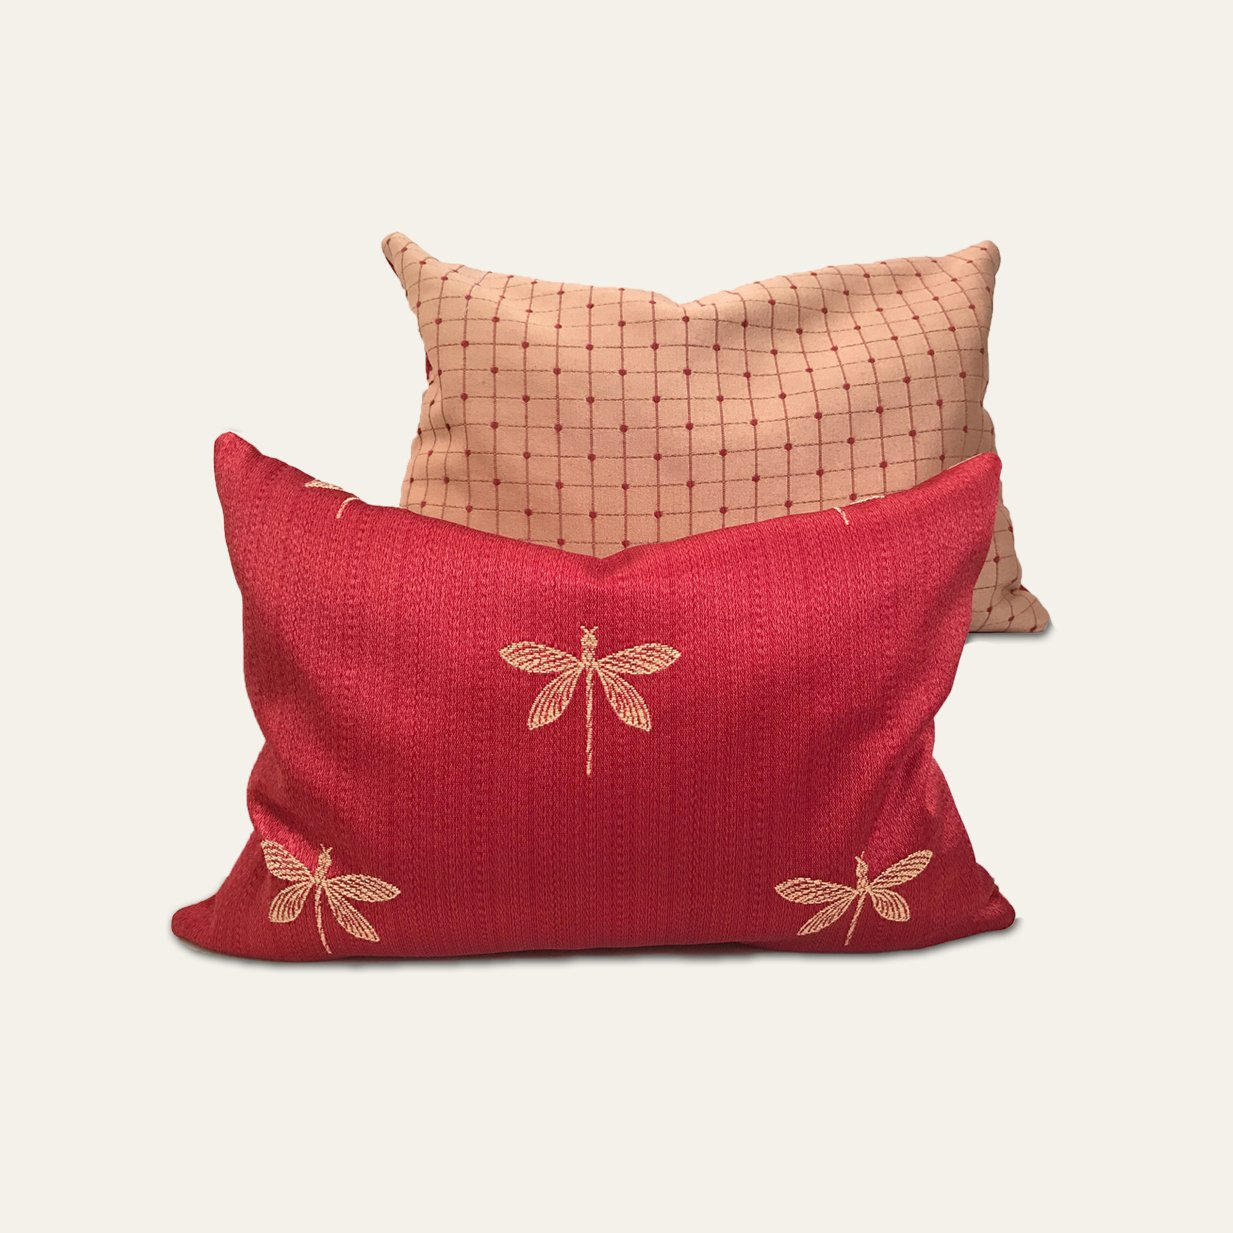 Balsam Fir Pillow Fragrant Long Lasting Christmas and Year Round Decorative Pillow 12.5'' x 8''